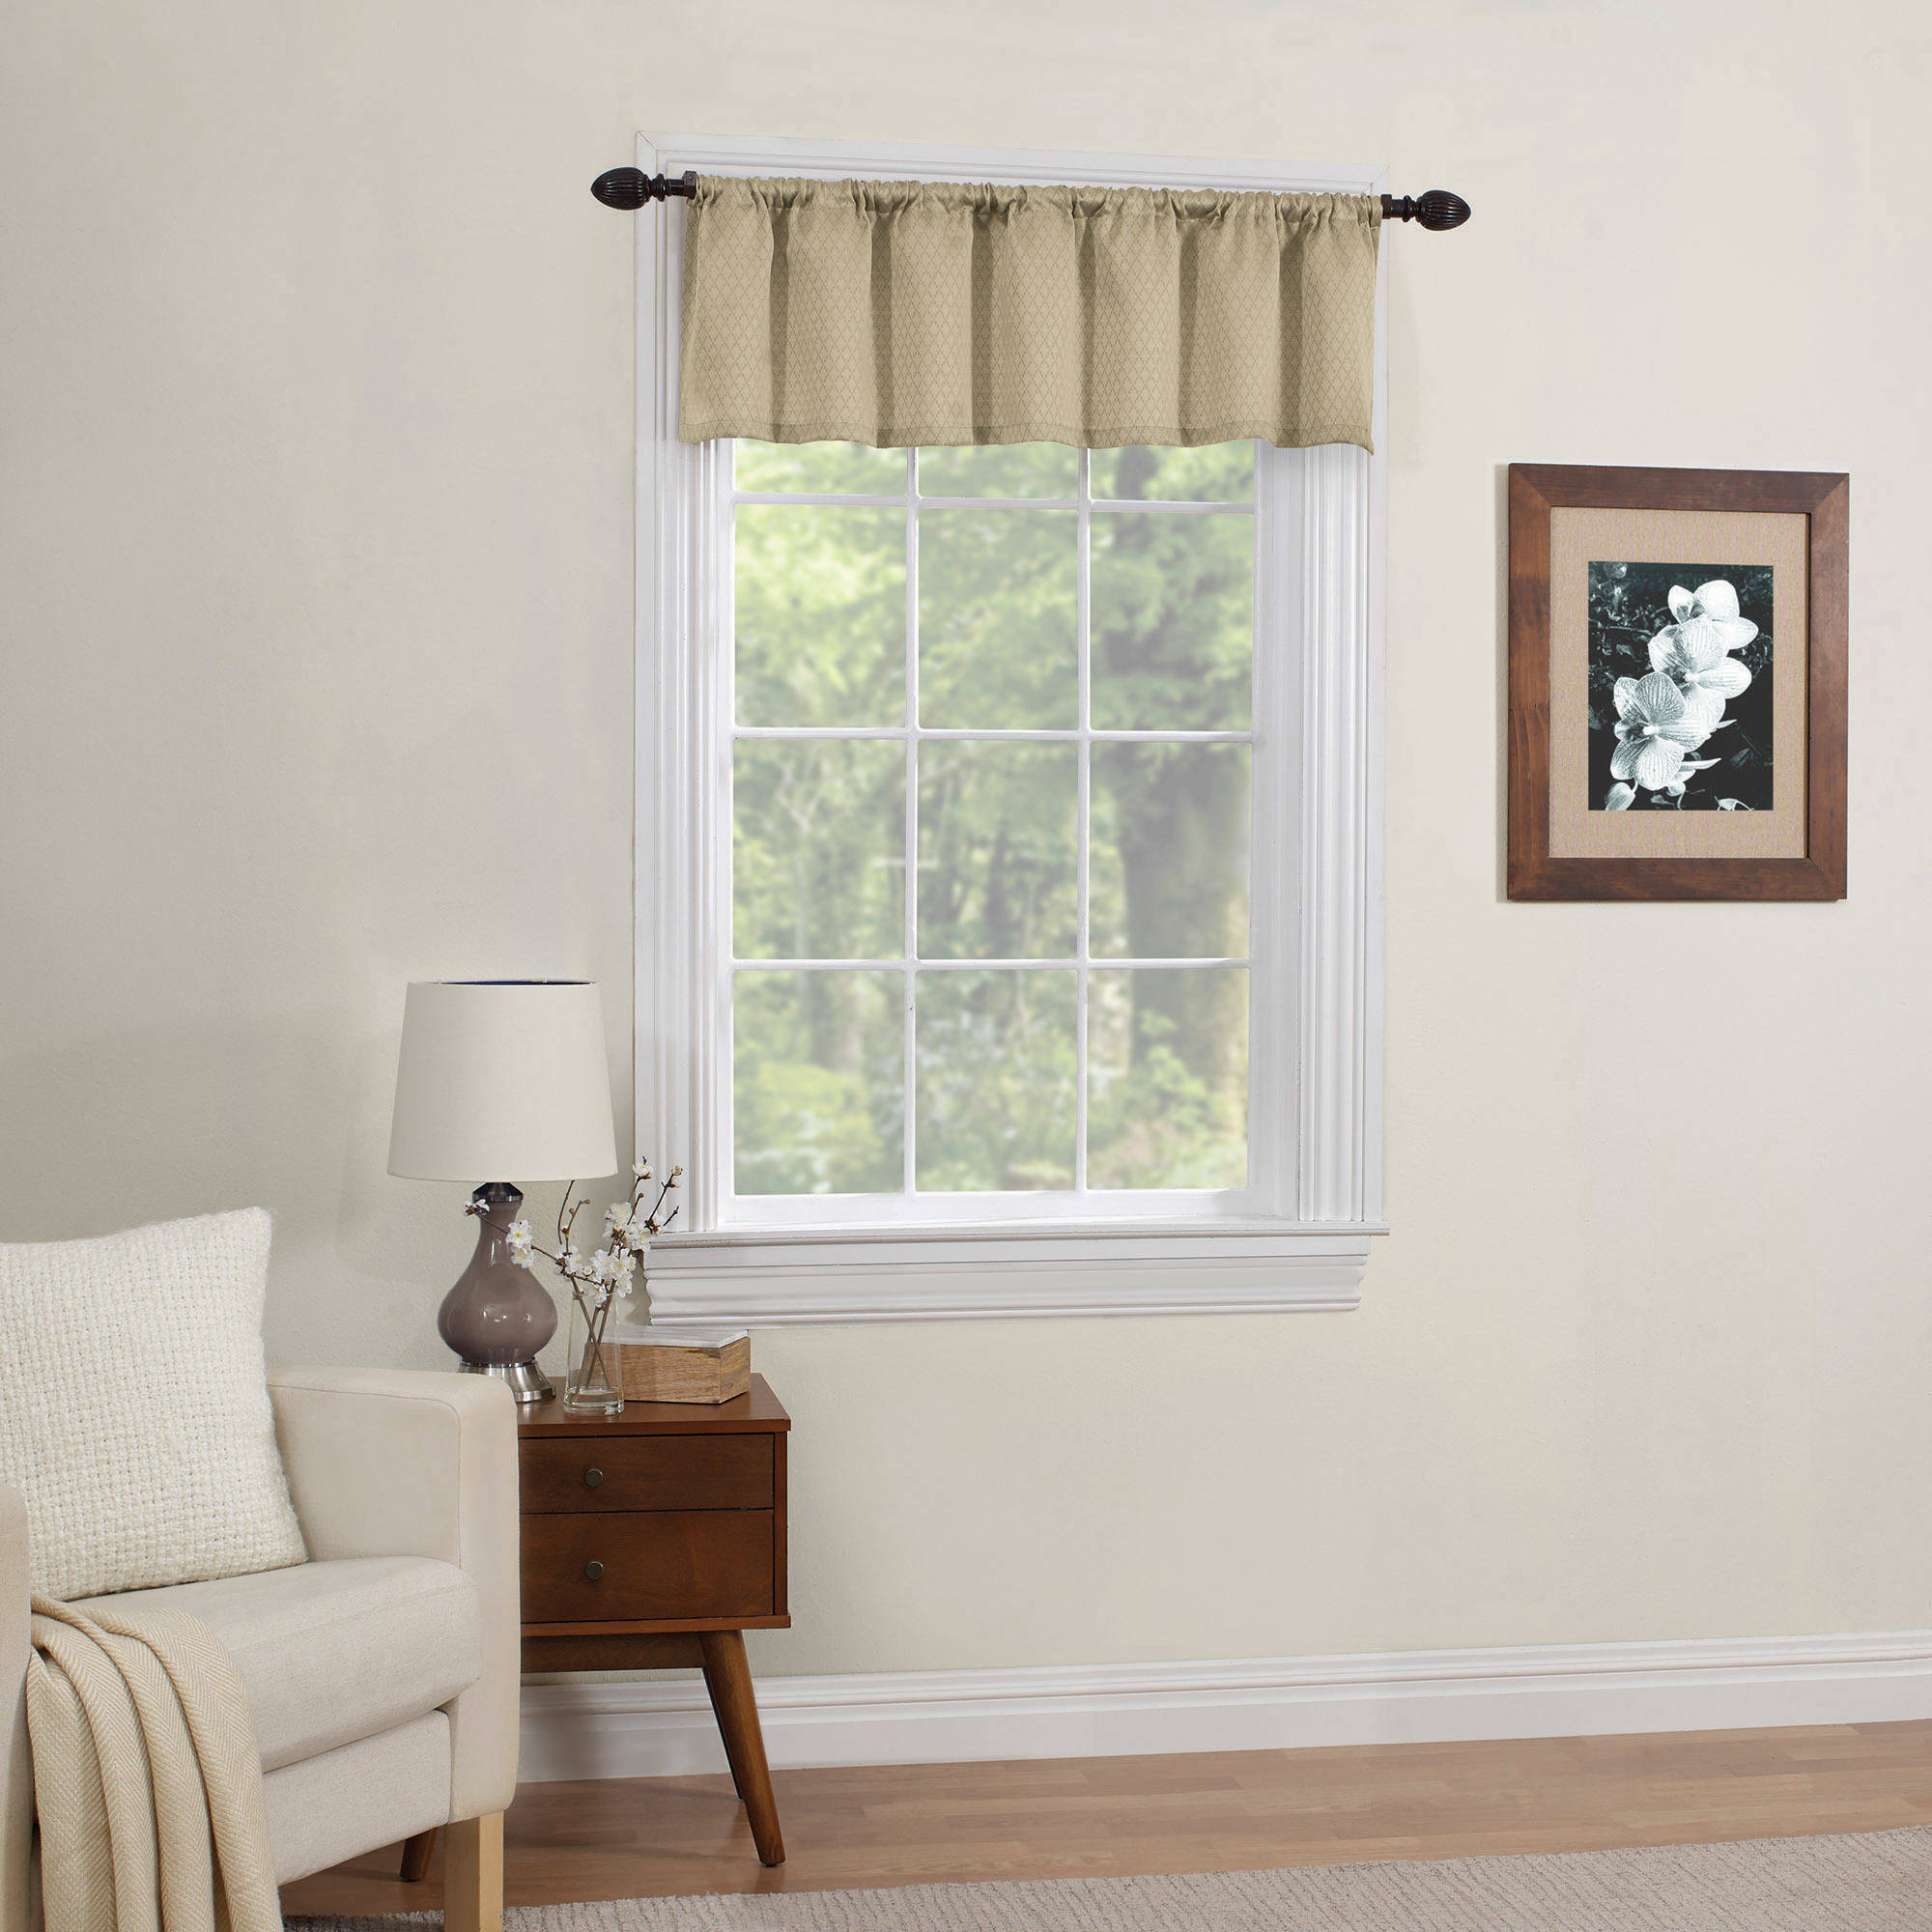 Mainstays Diamond Room Darkening Kitchen Window Valance, Multiple Colors